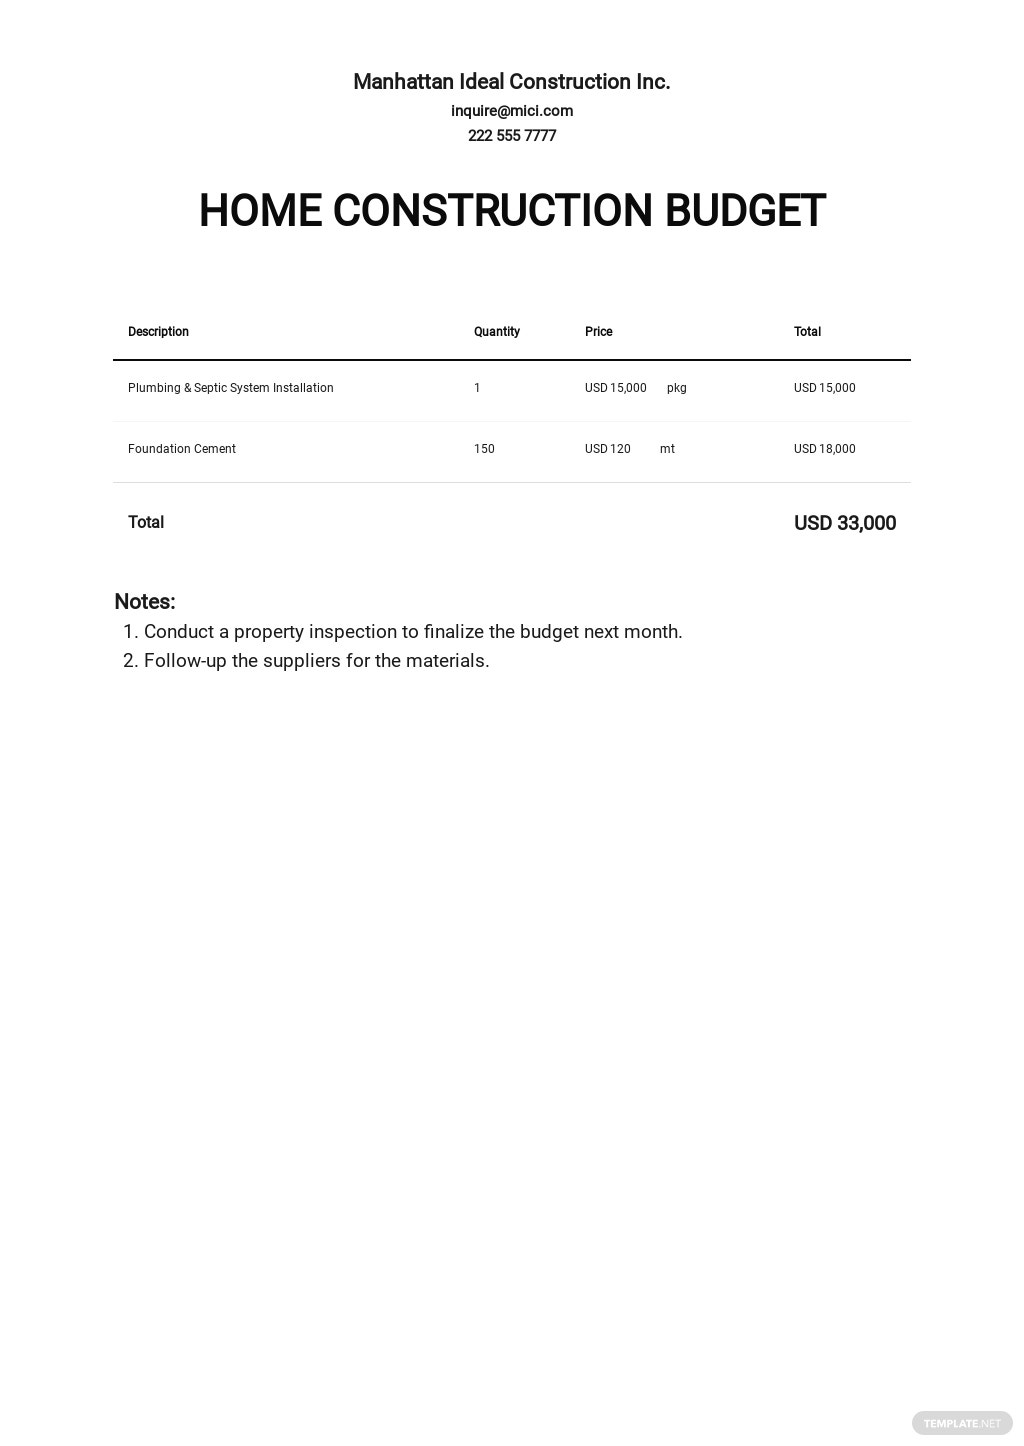 Home Construction Budget Template